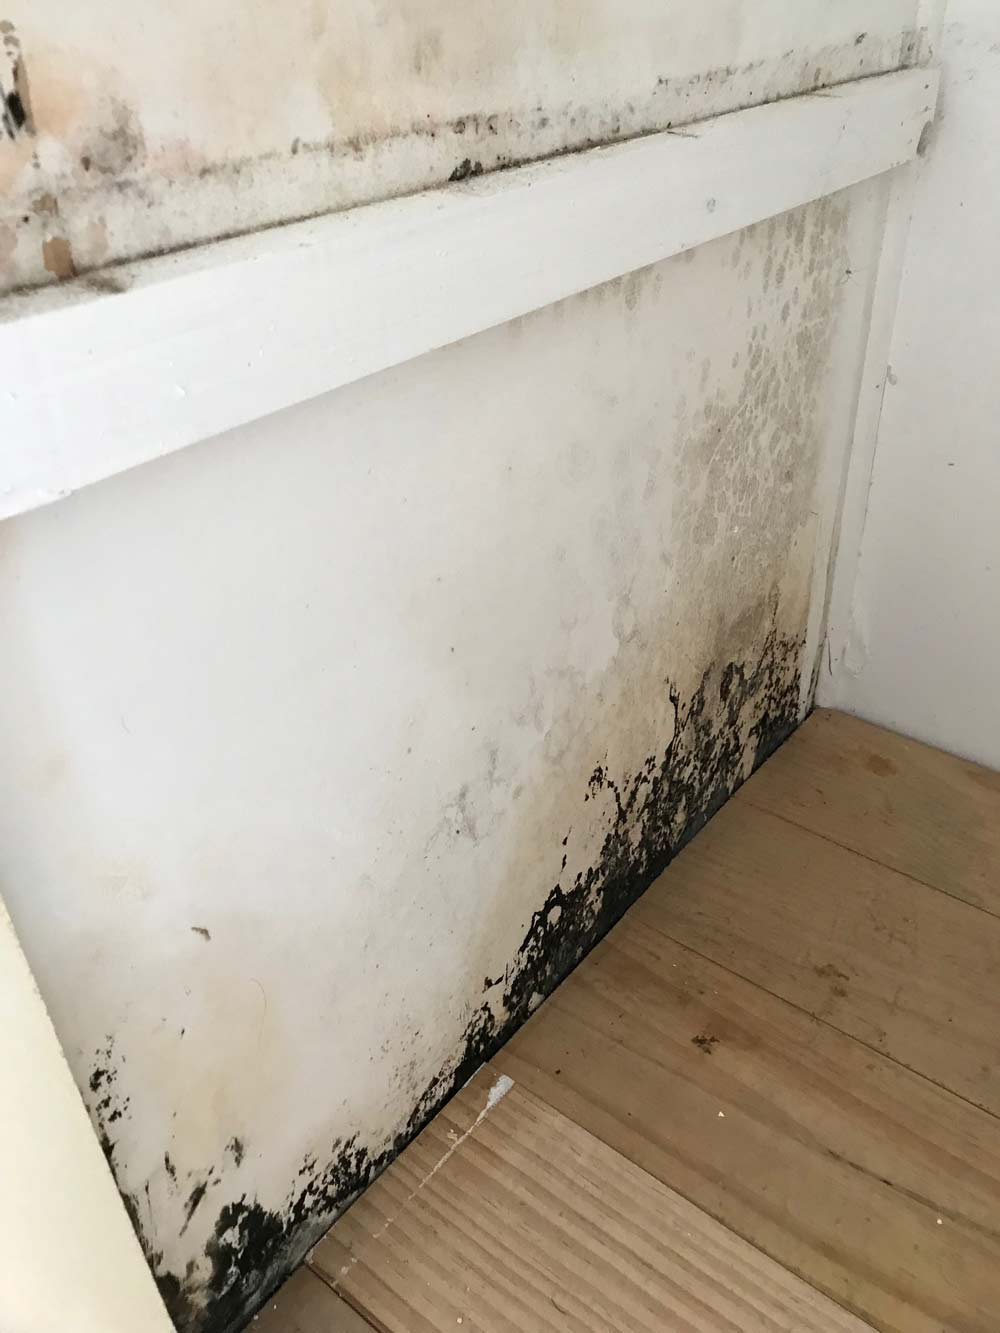 Black mould on white wall